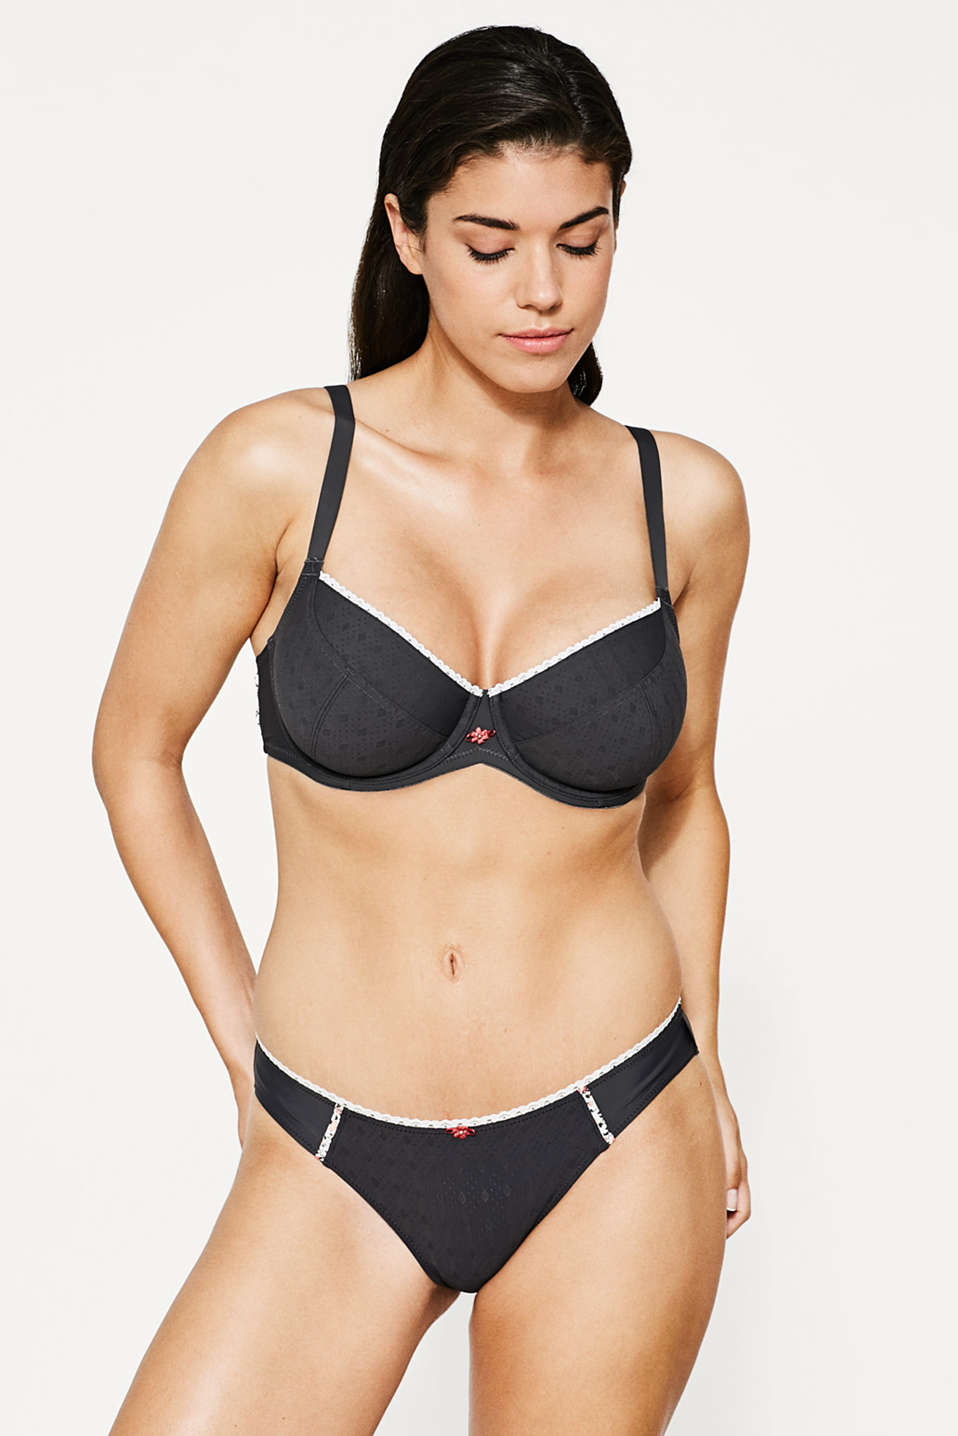 Esprit - Big-cup bra with multi-way straps